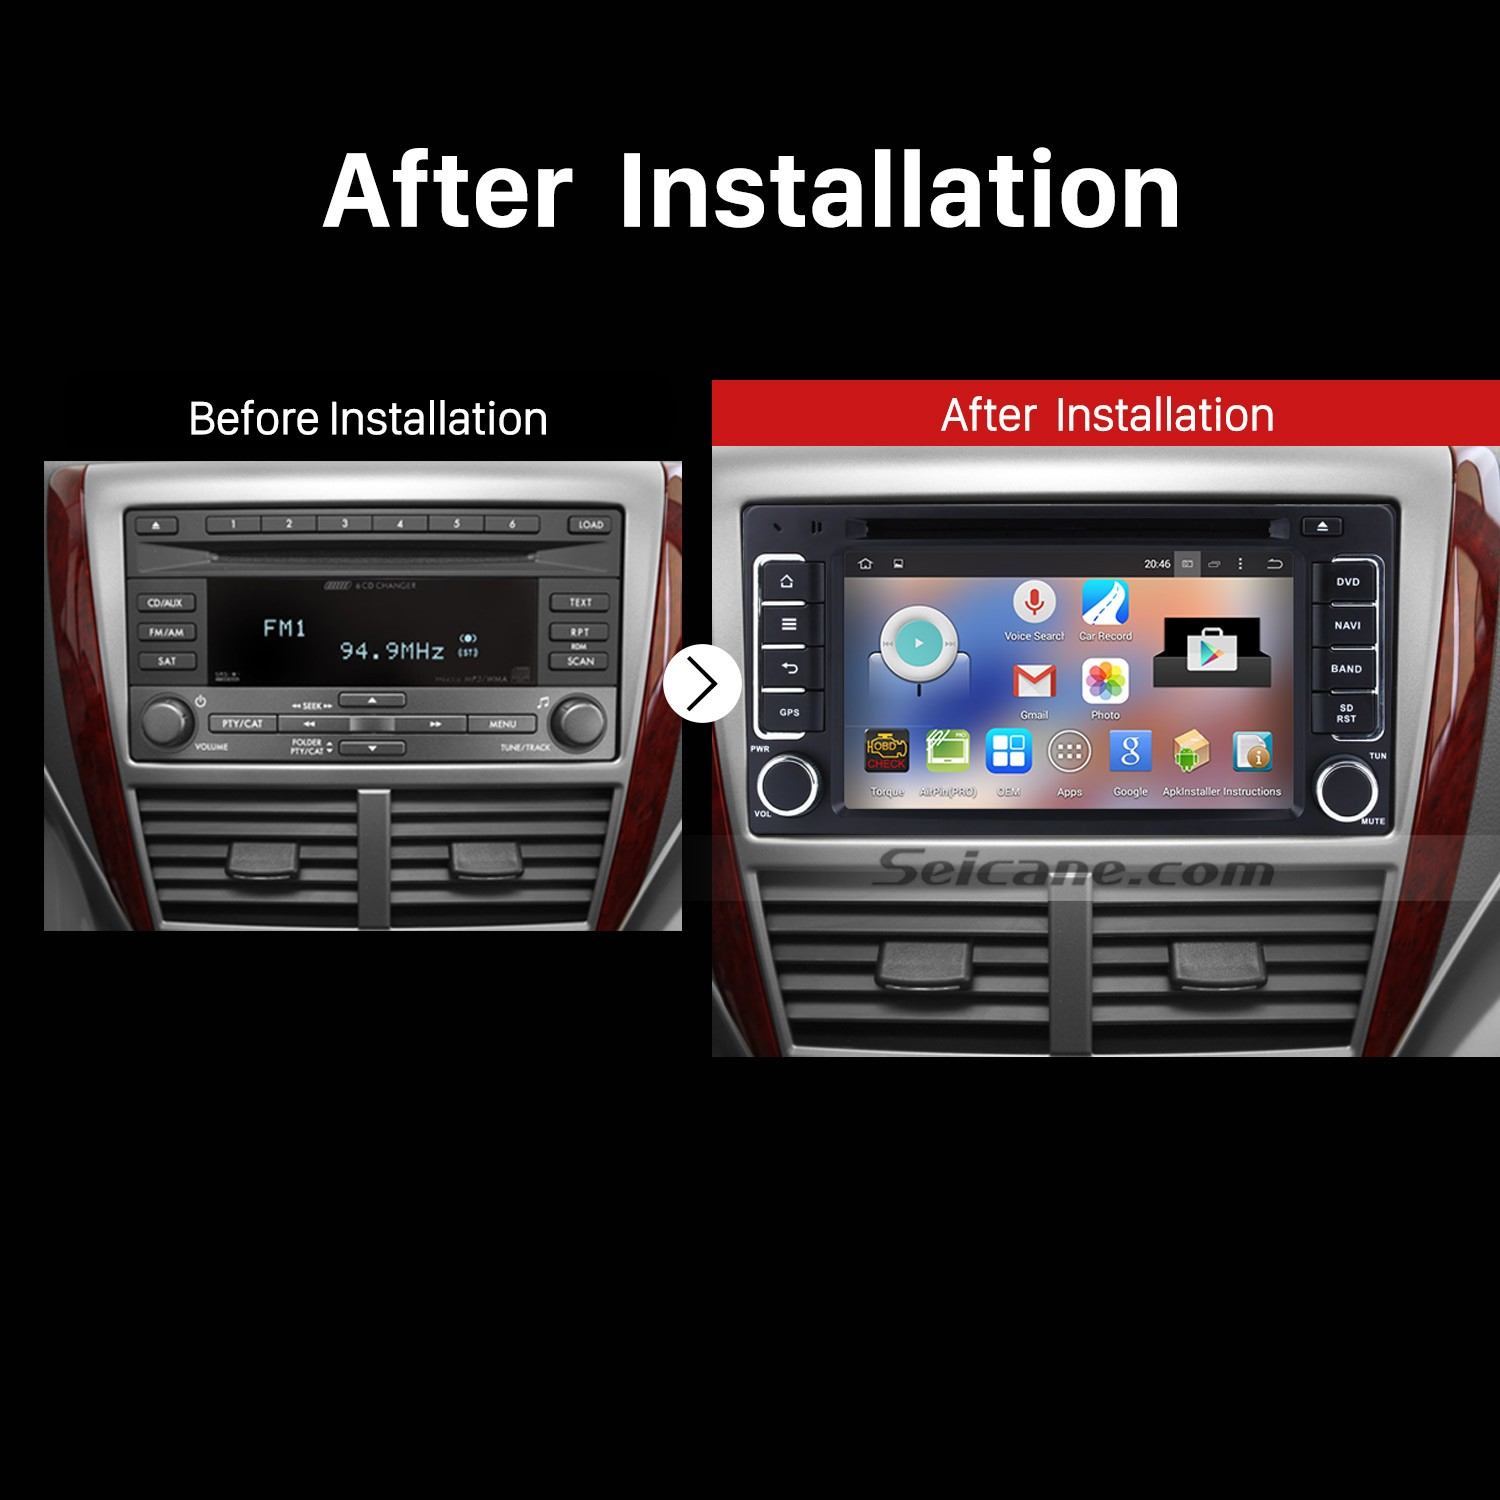 Car Stereo For Subaru Impreza | Best Cars Speakers Guide